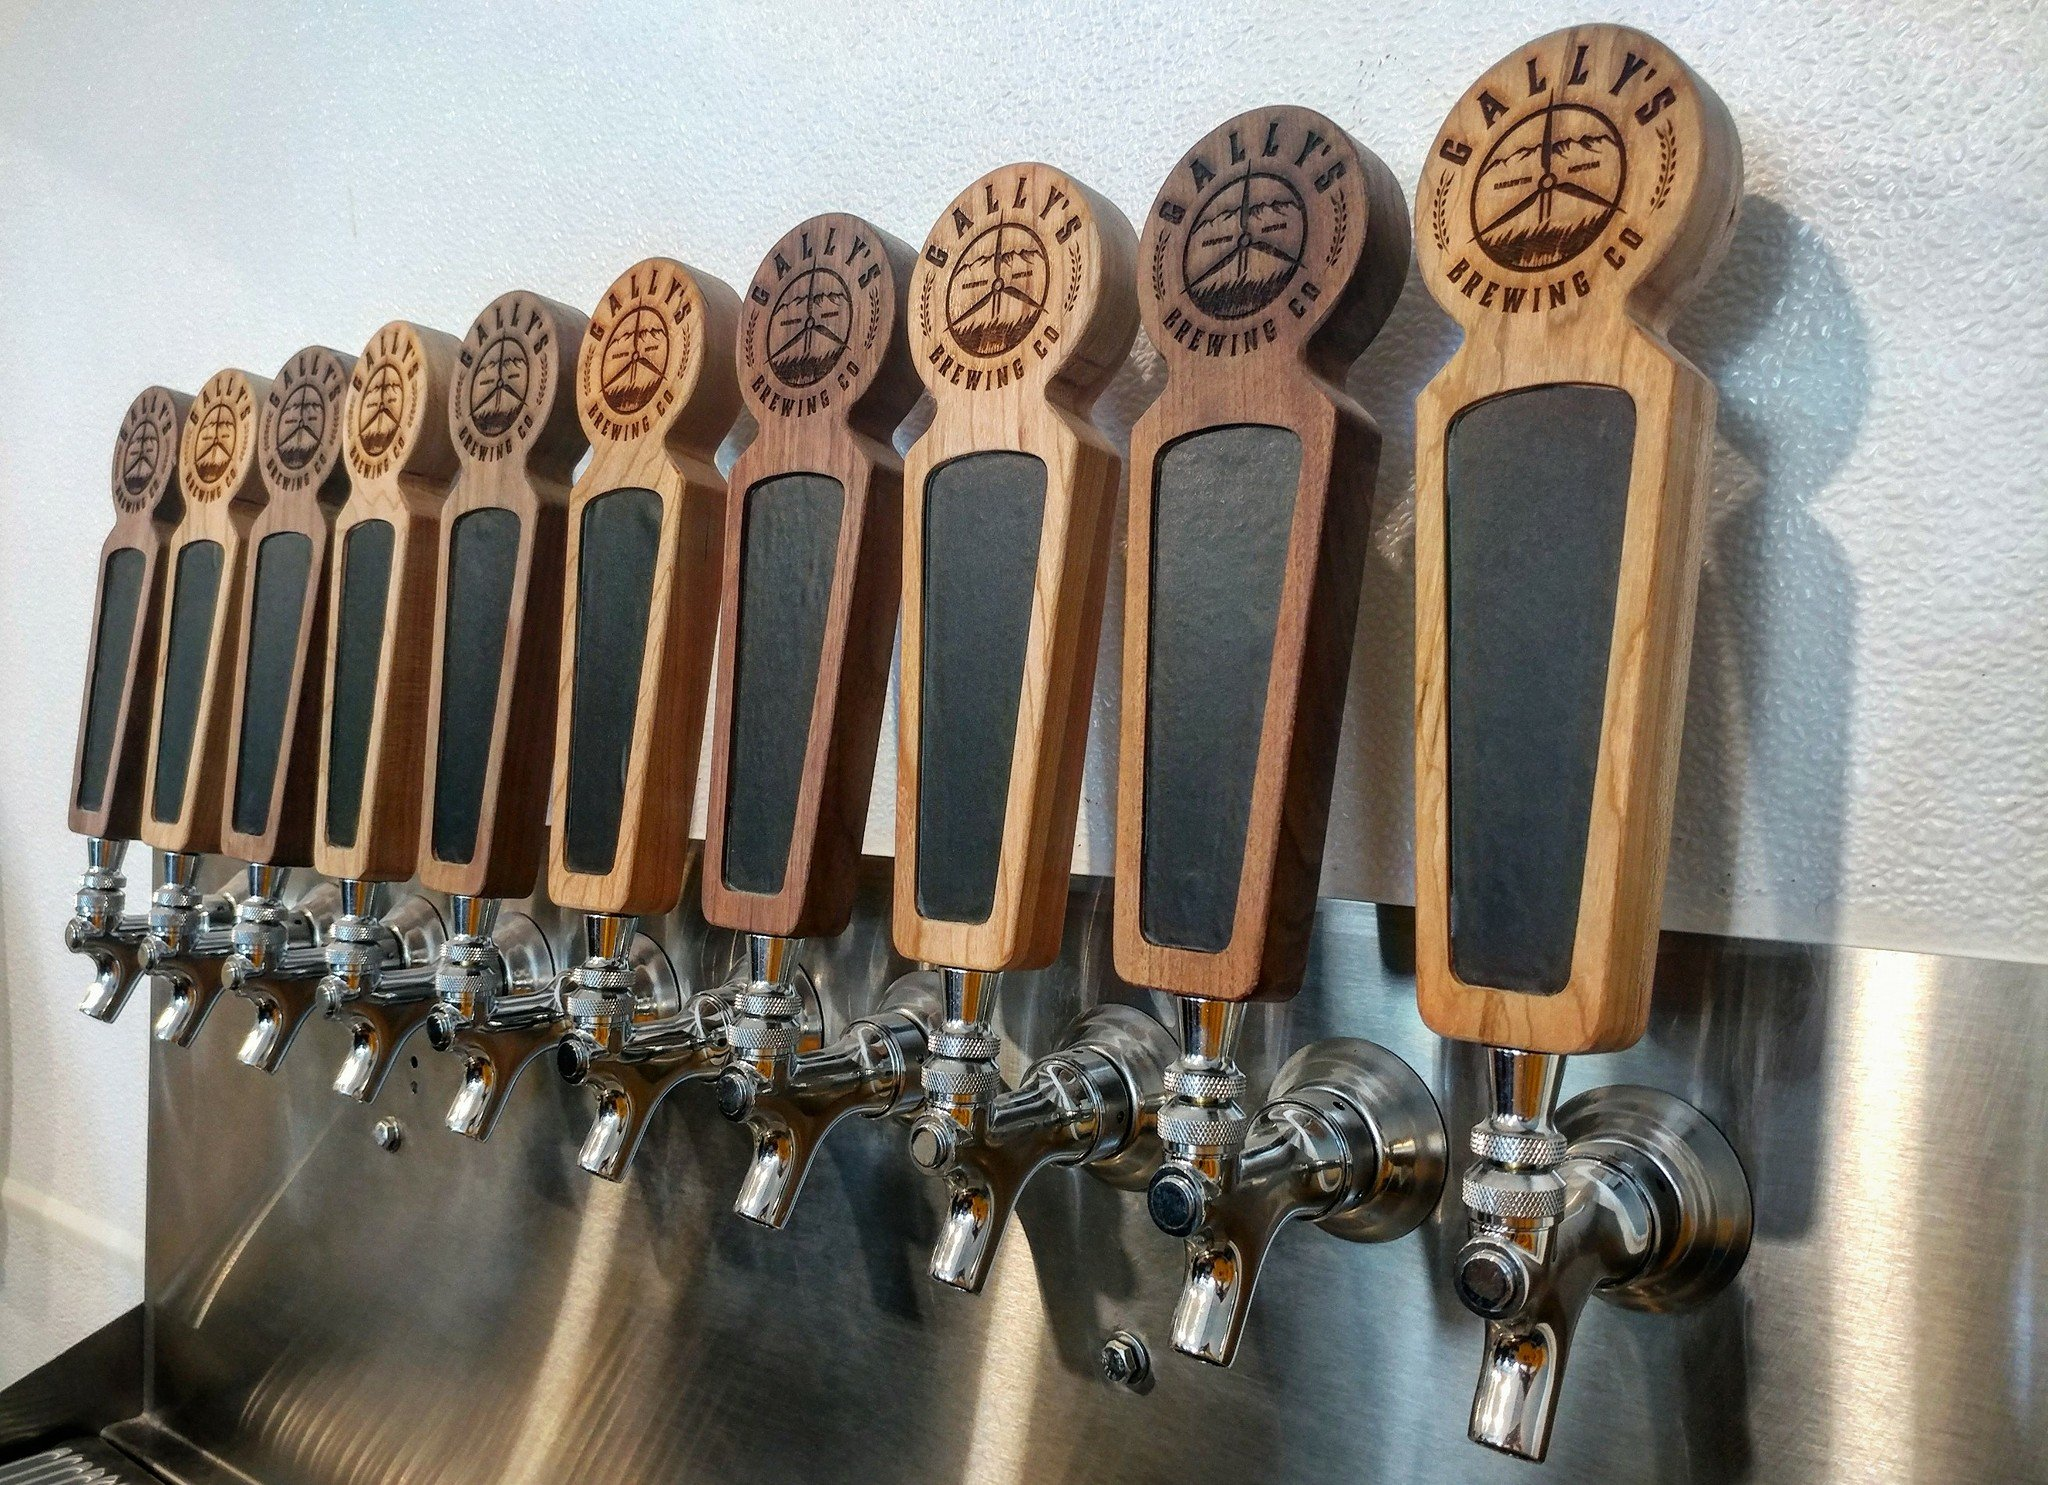 Gally's Brewing will offer 10 taps when it opens in Harlowton in December. (Gally's photo)